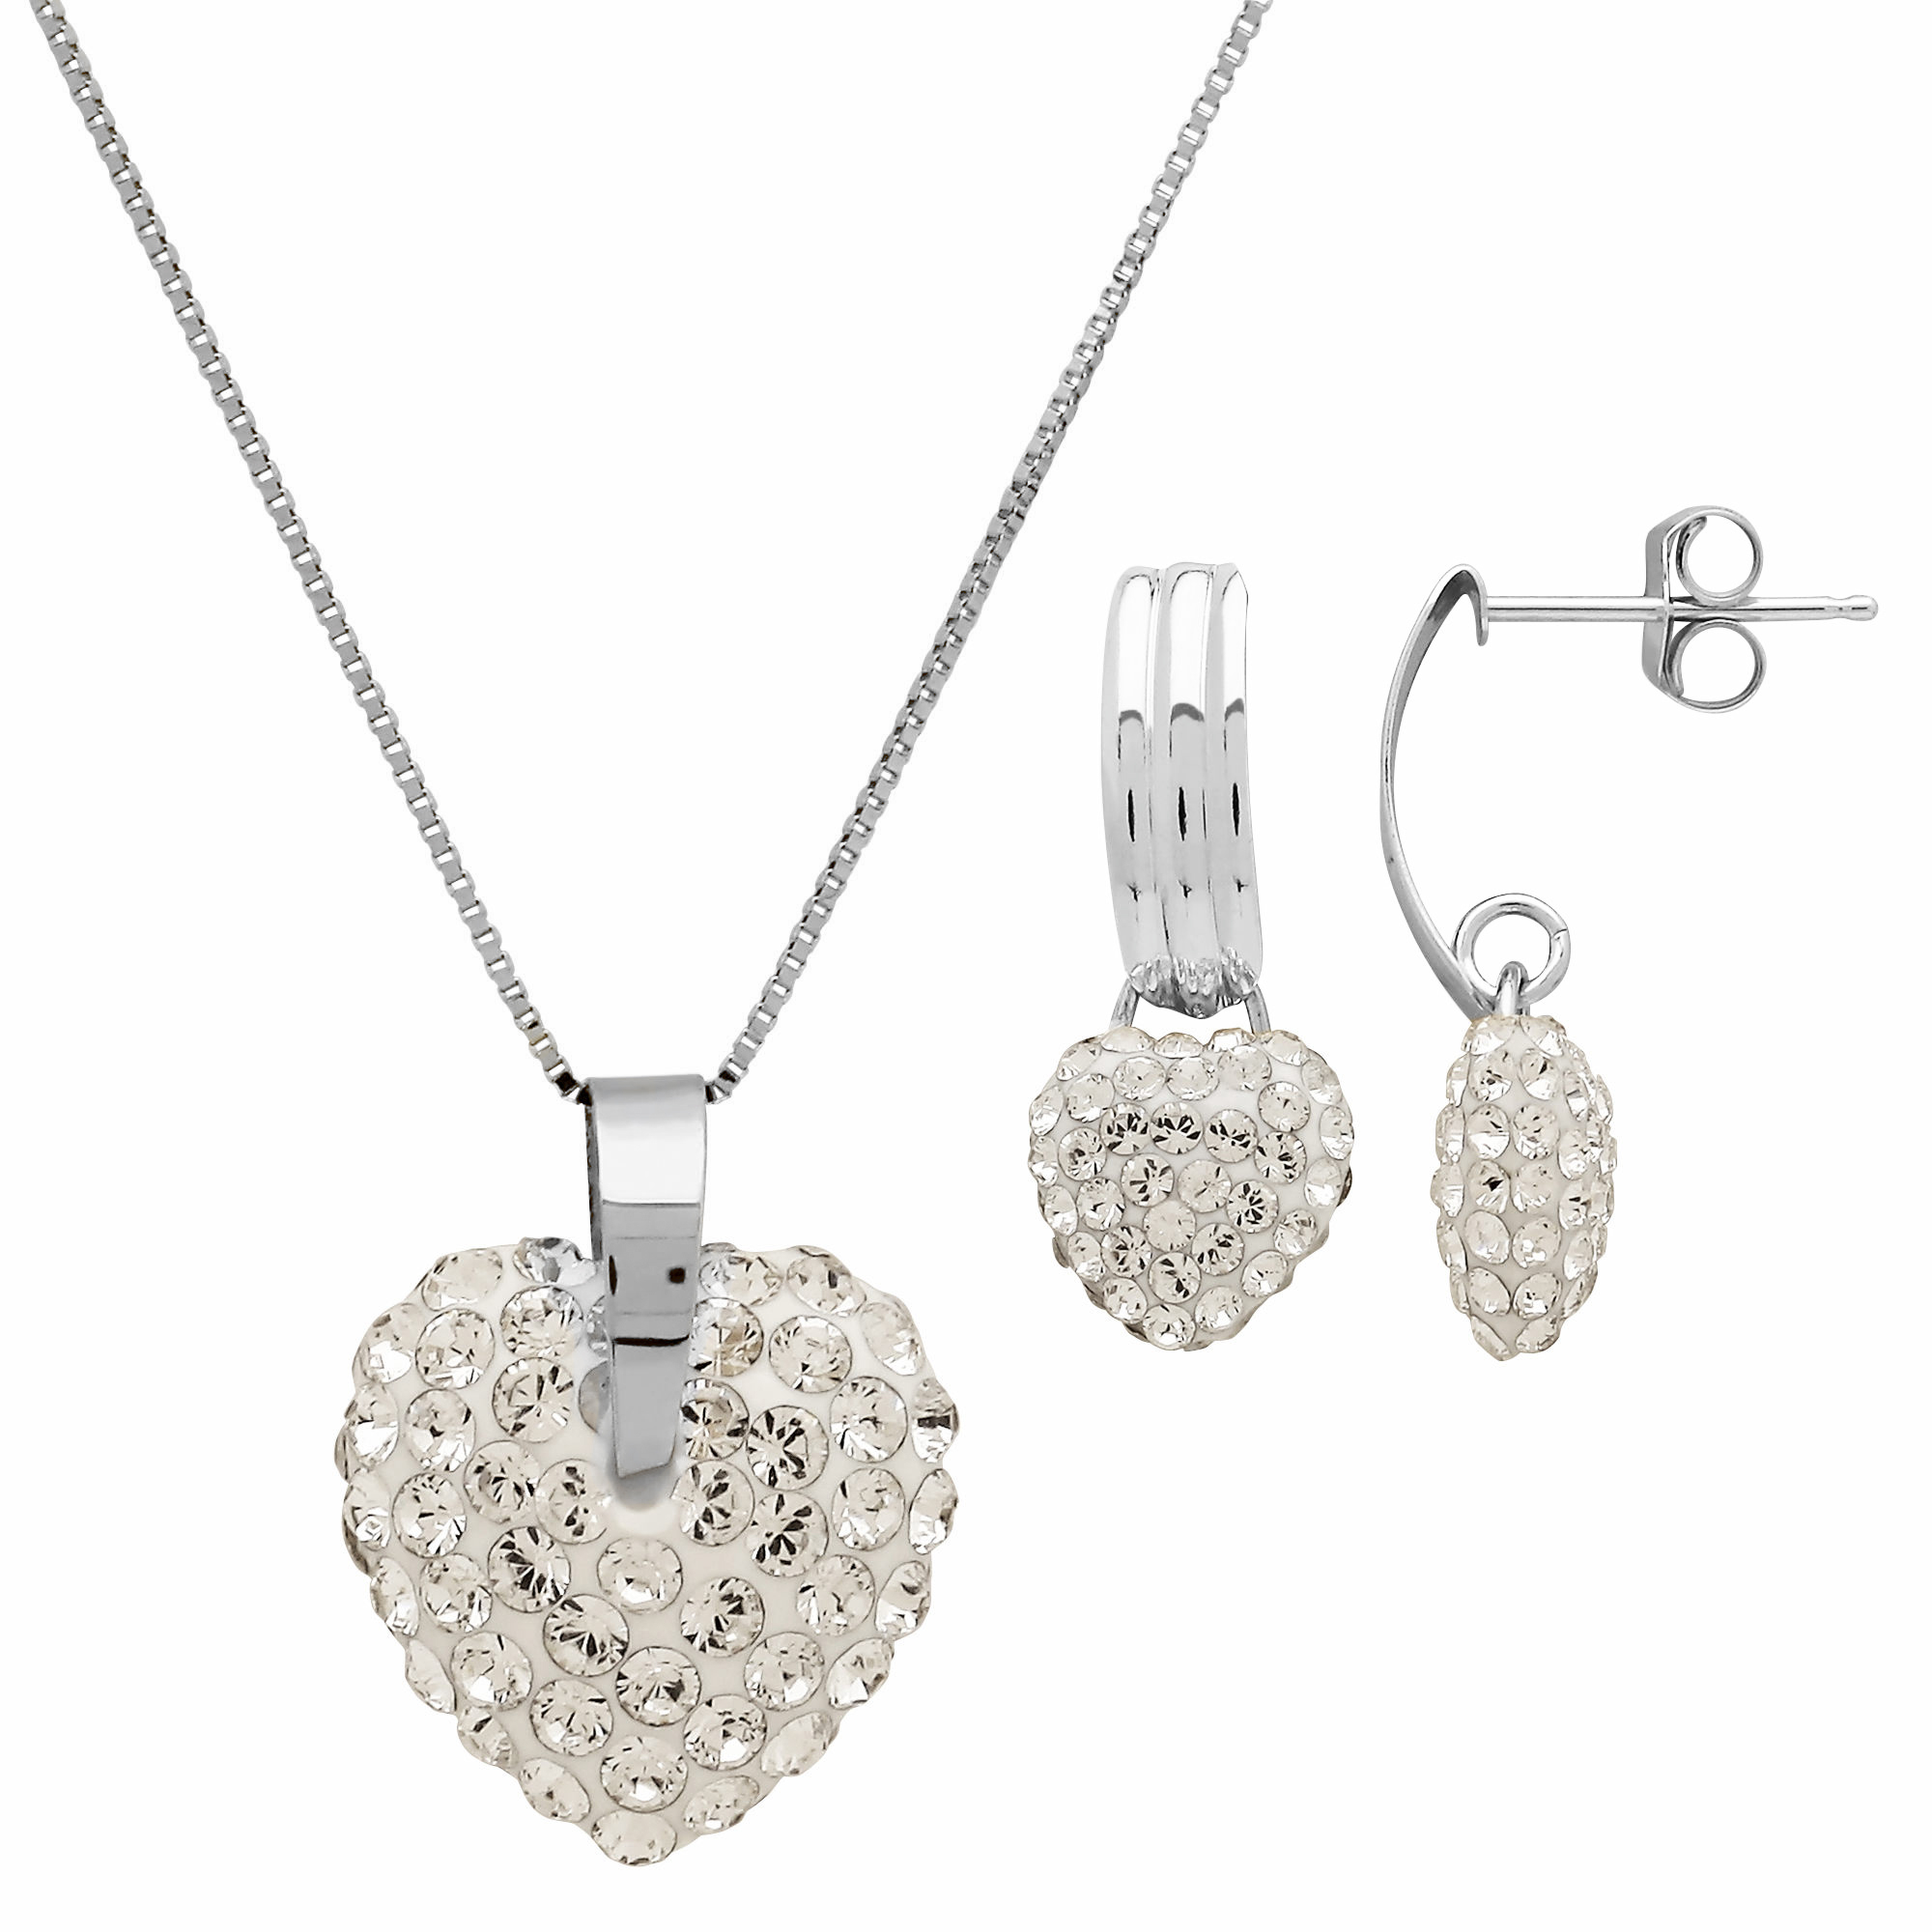 Rhodium_Plated_Crystal_Puffed_Heart_Necklace_and_Earrings_Set